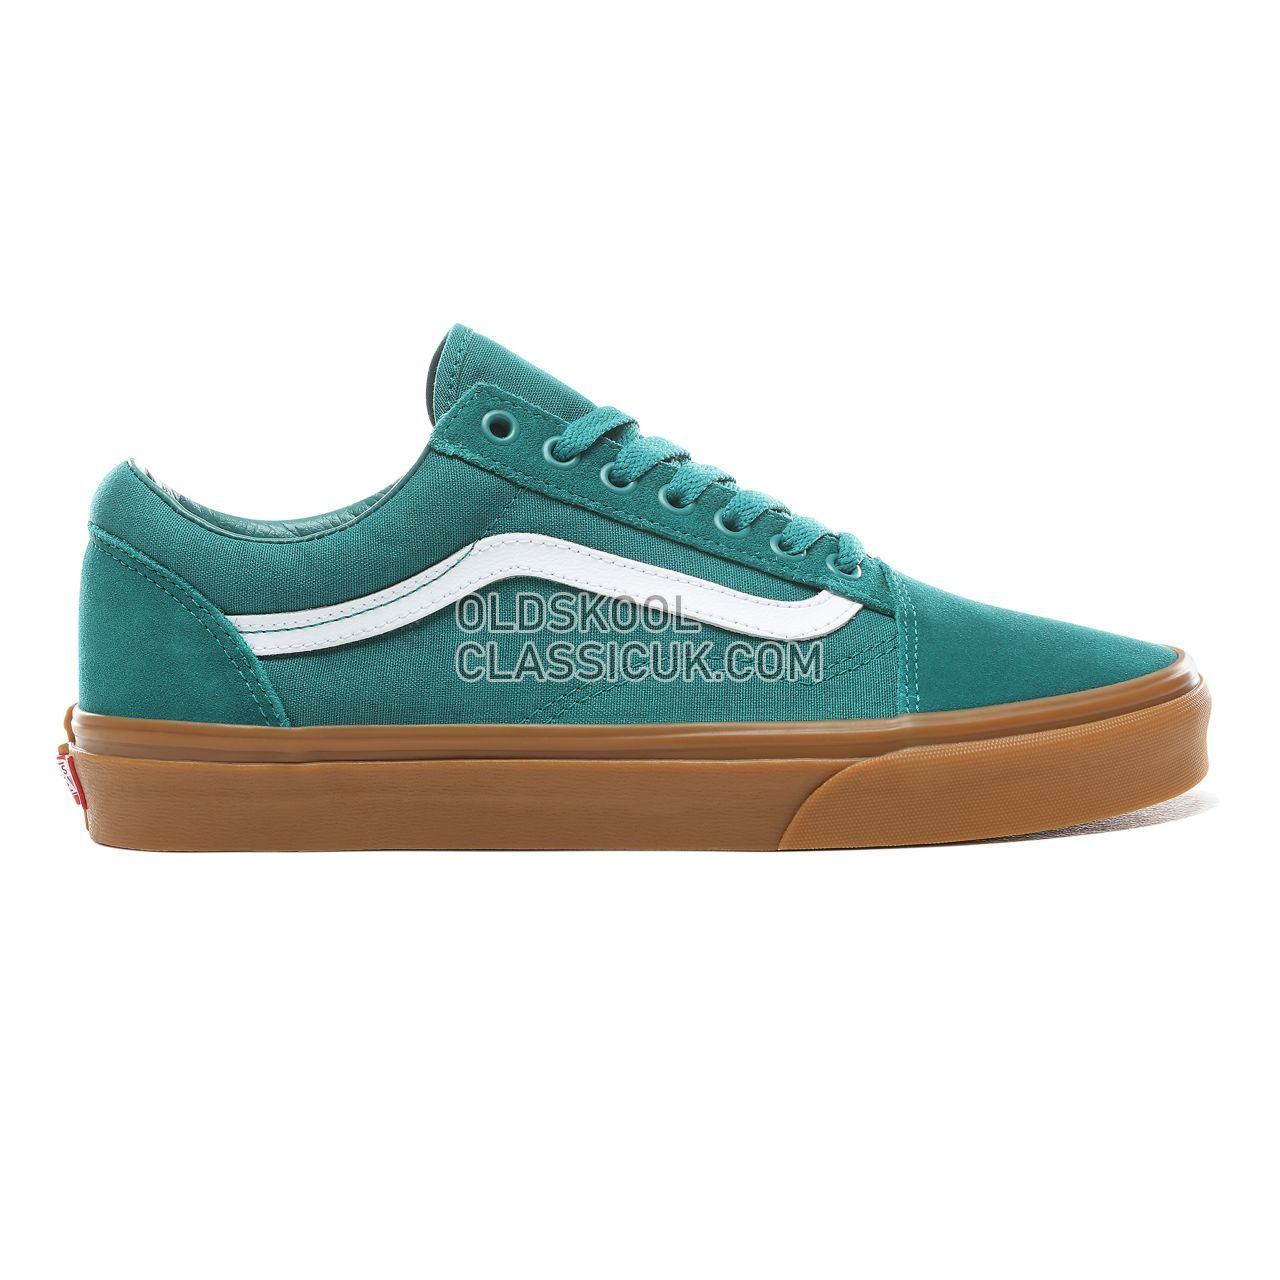 e3101bfda2e5 Vans Old Skool Sneakers Mens Womens Unisex Quetzal Green Gum VN0A38G1VKU  Shoes ...